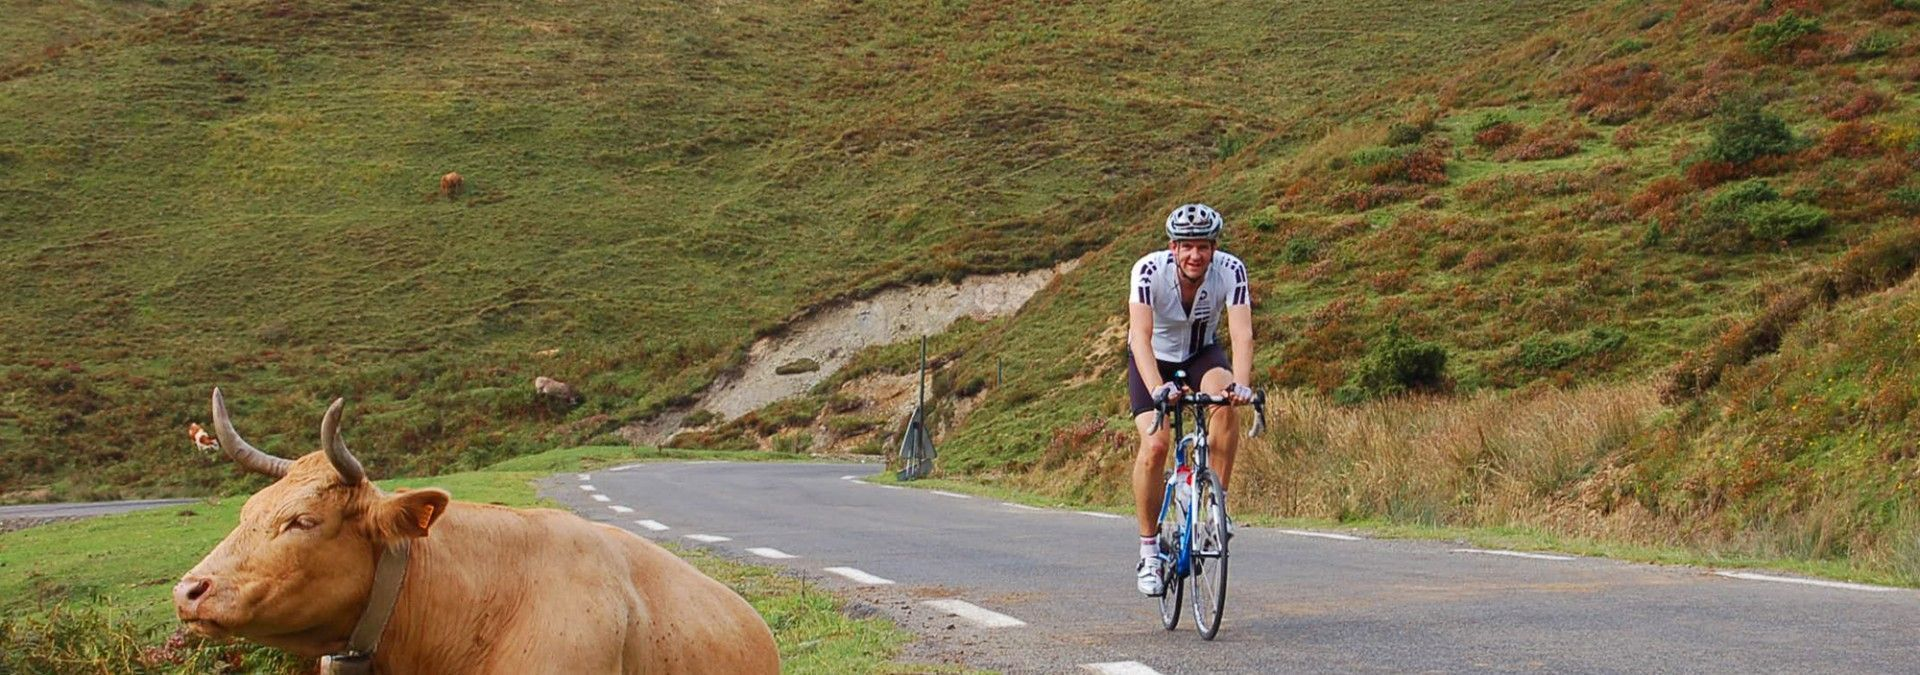 Cycling_uphill_by_Cow_wearing_bell_France.jpg